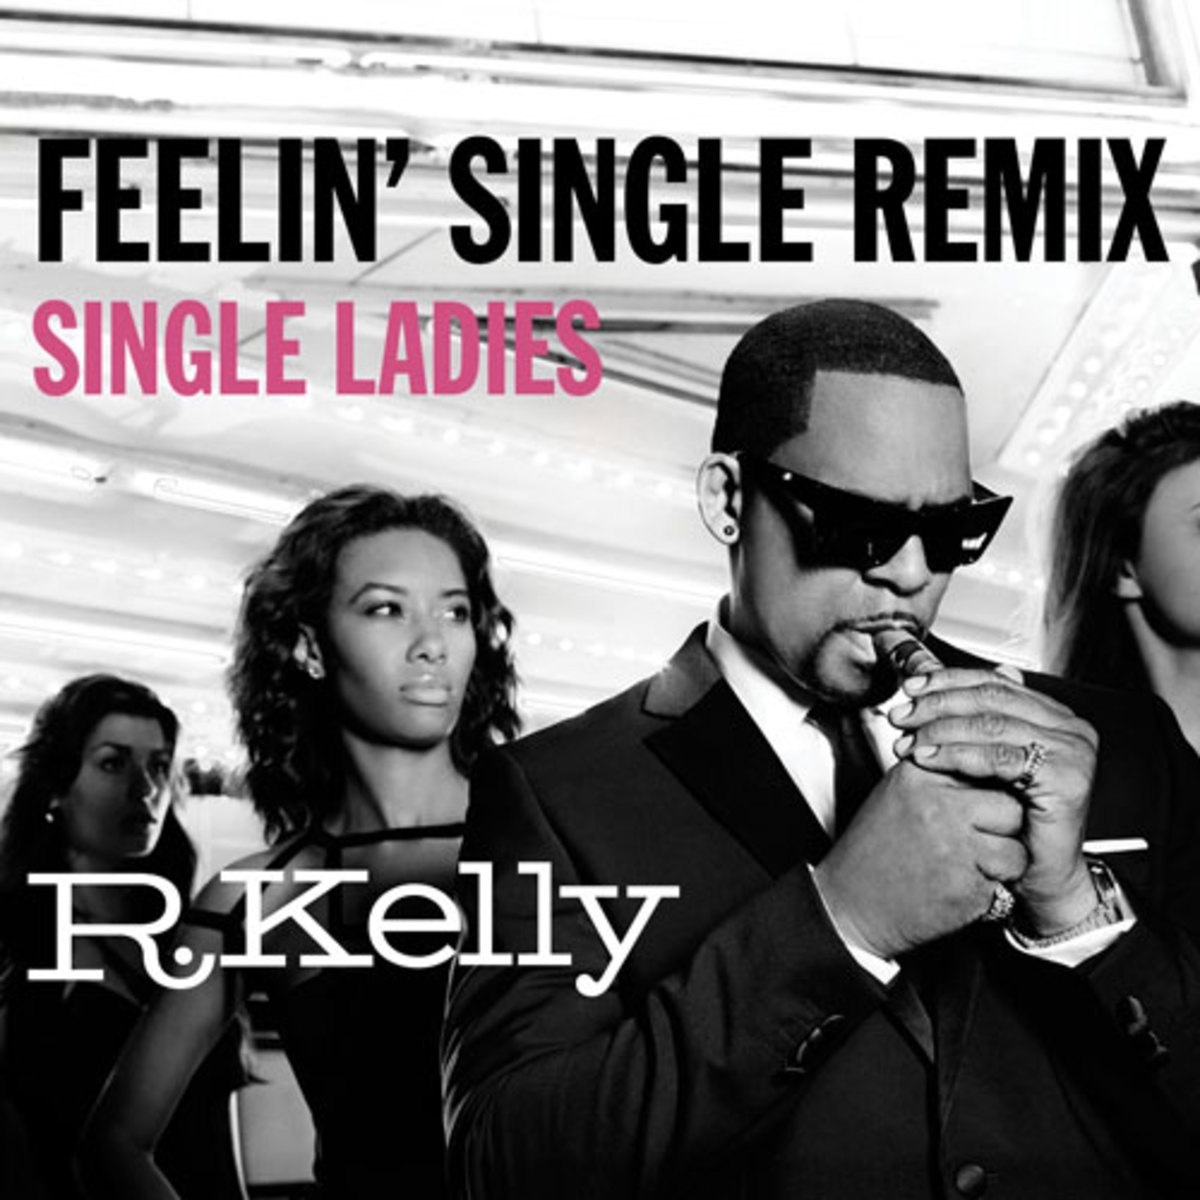 rkelly-feelinsinglermx.jpg